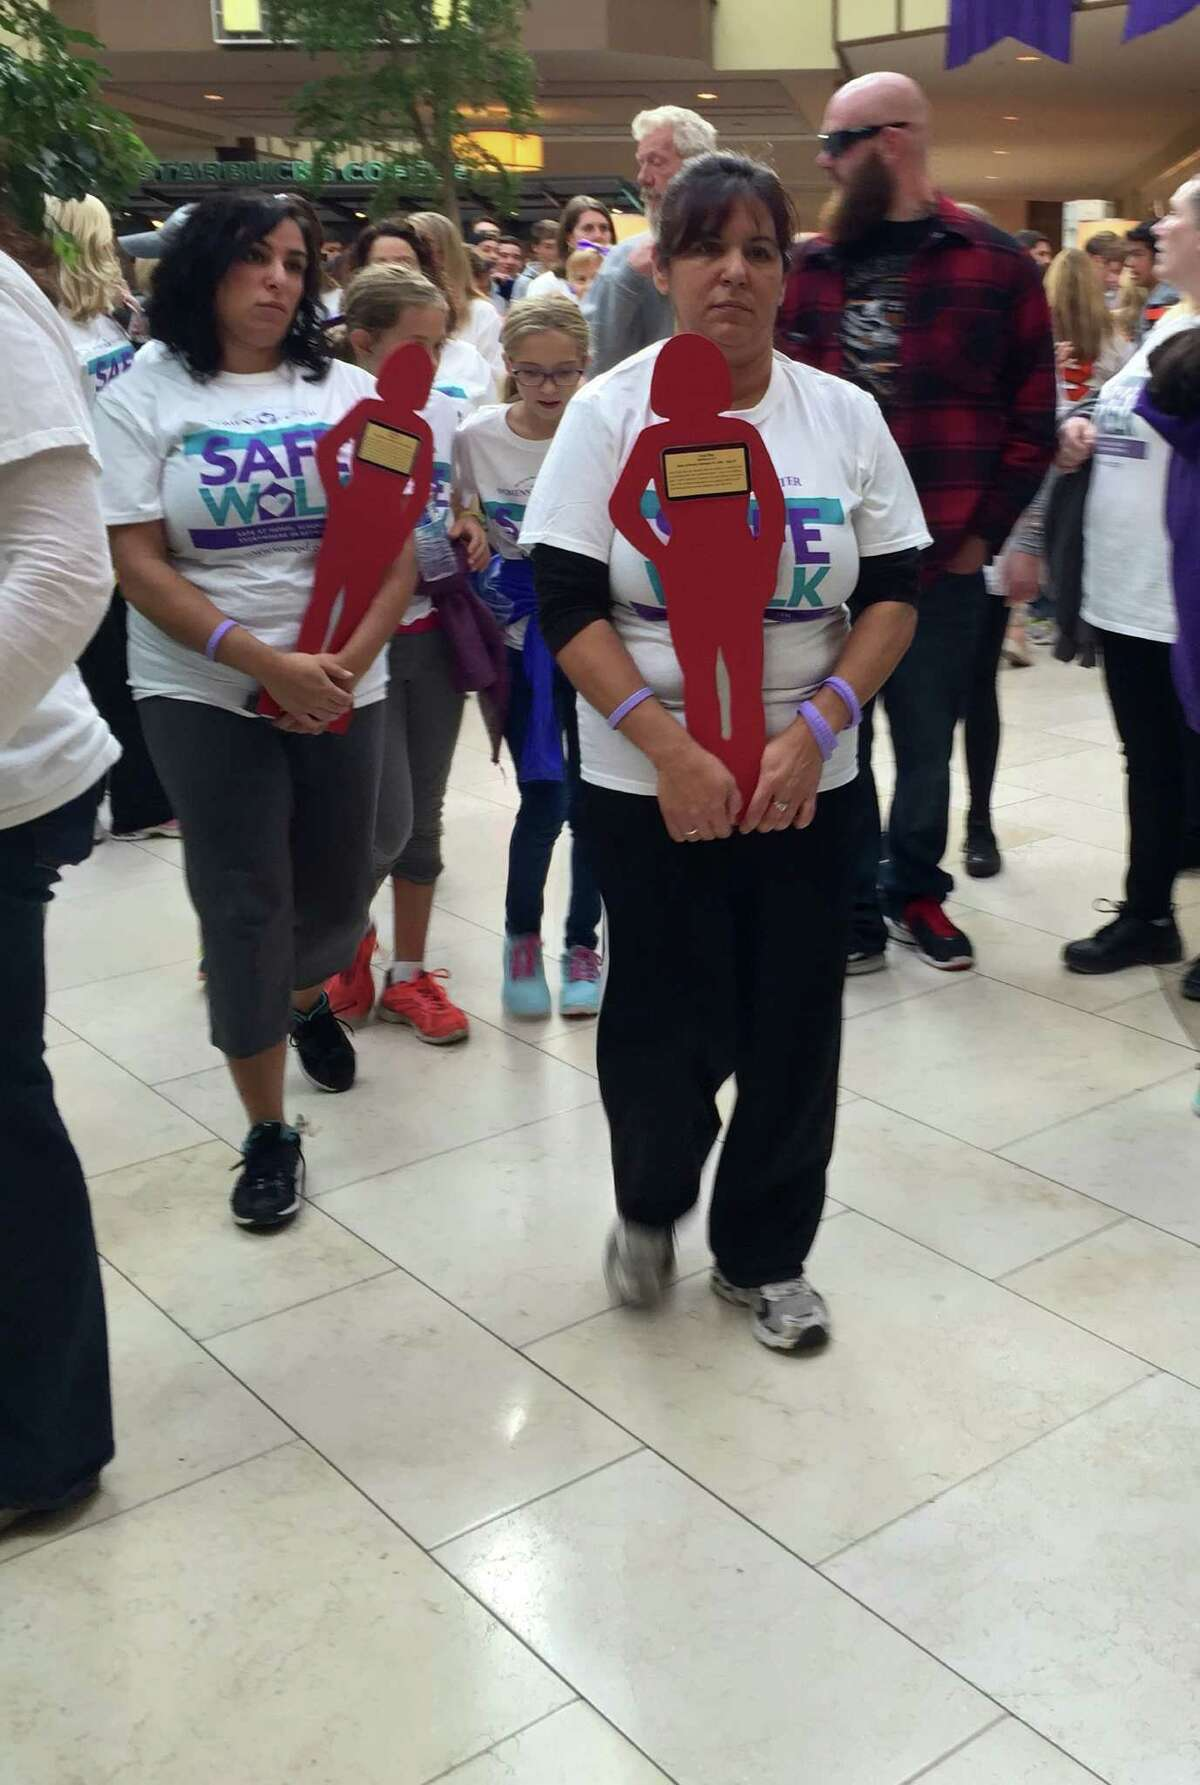 Participants in Sunday's Safe Walk carry